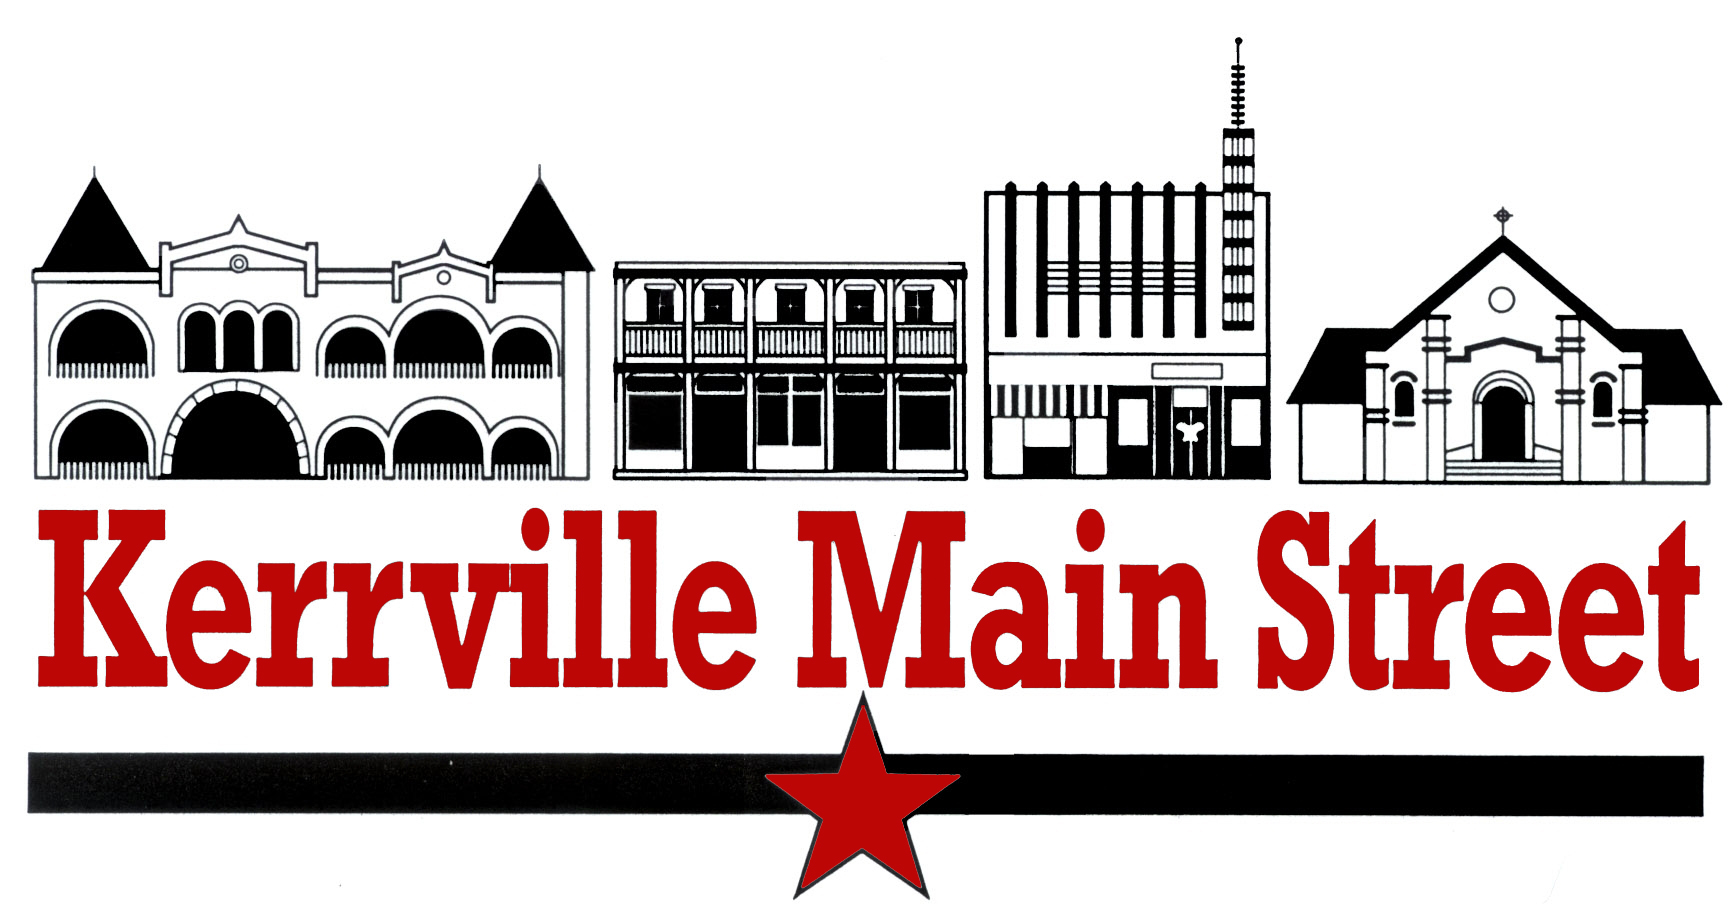 Kerrville Main Street Logo - Red, Black and White copy.jpg